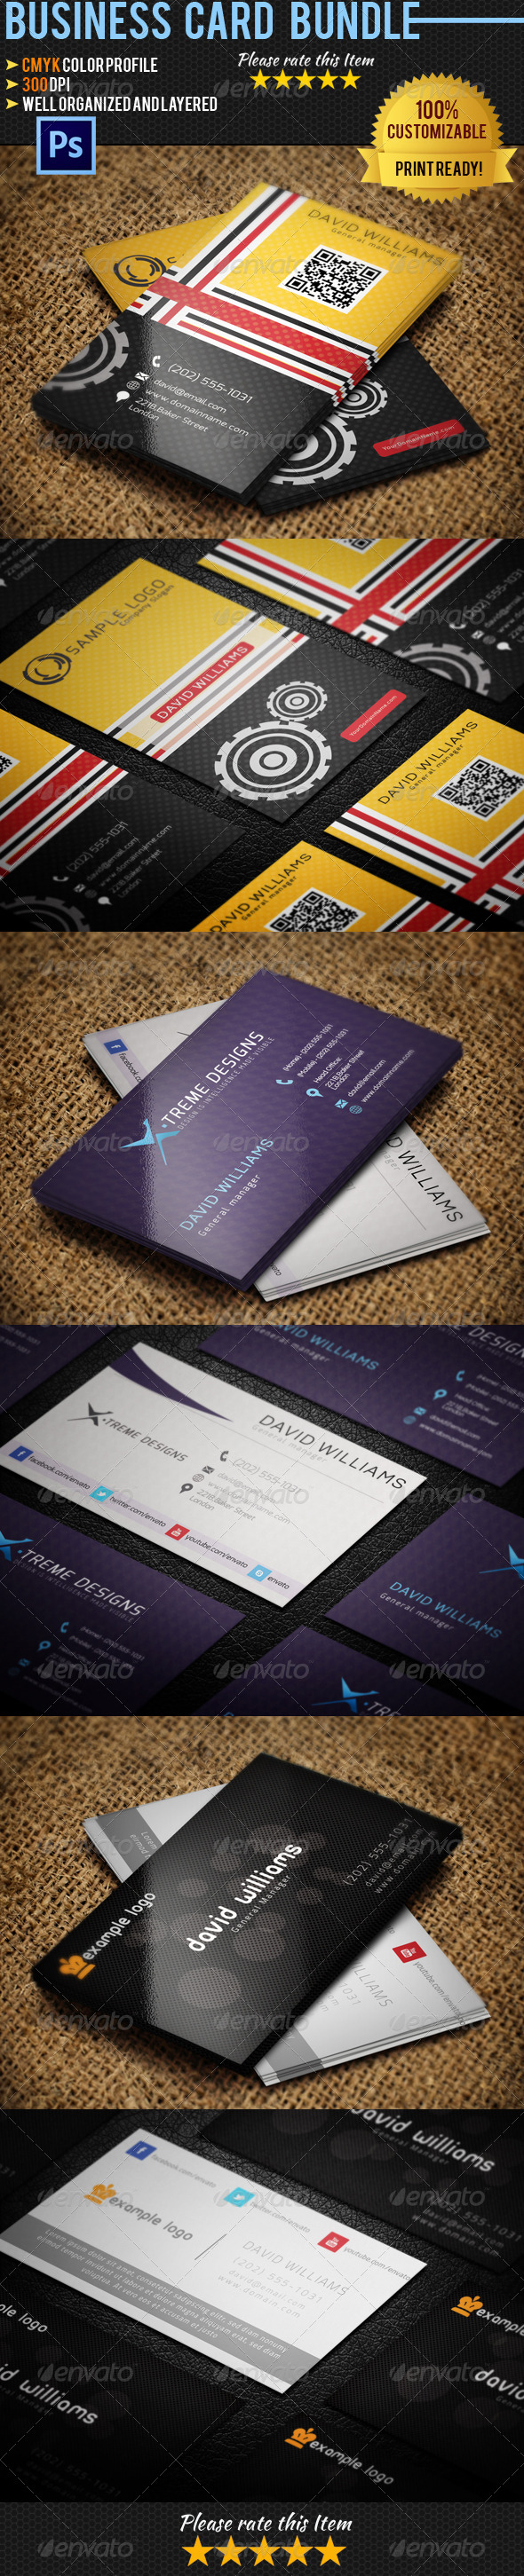 Personal Business Card Bundle 02 - Creative Business Cards